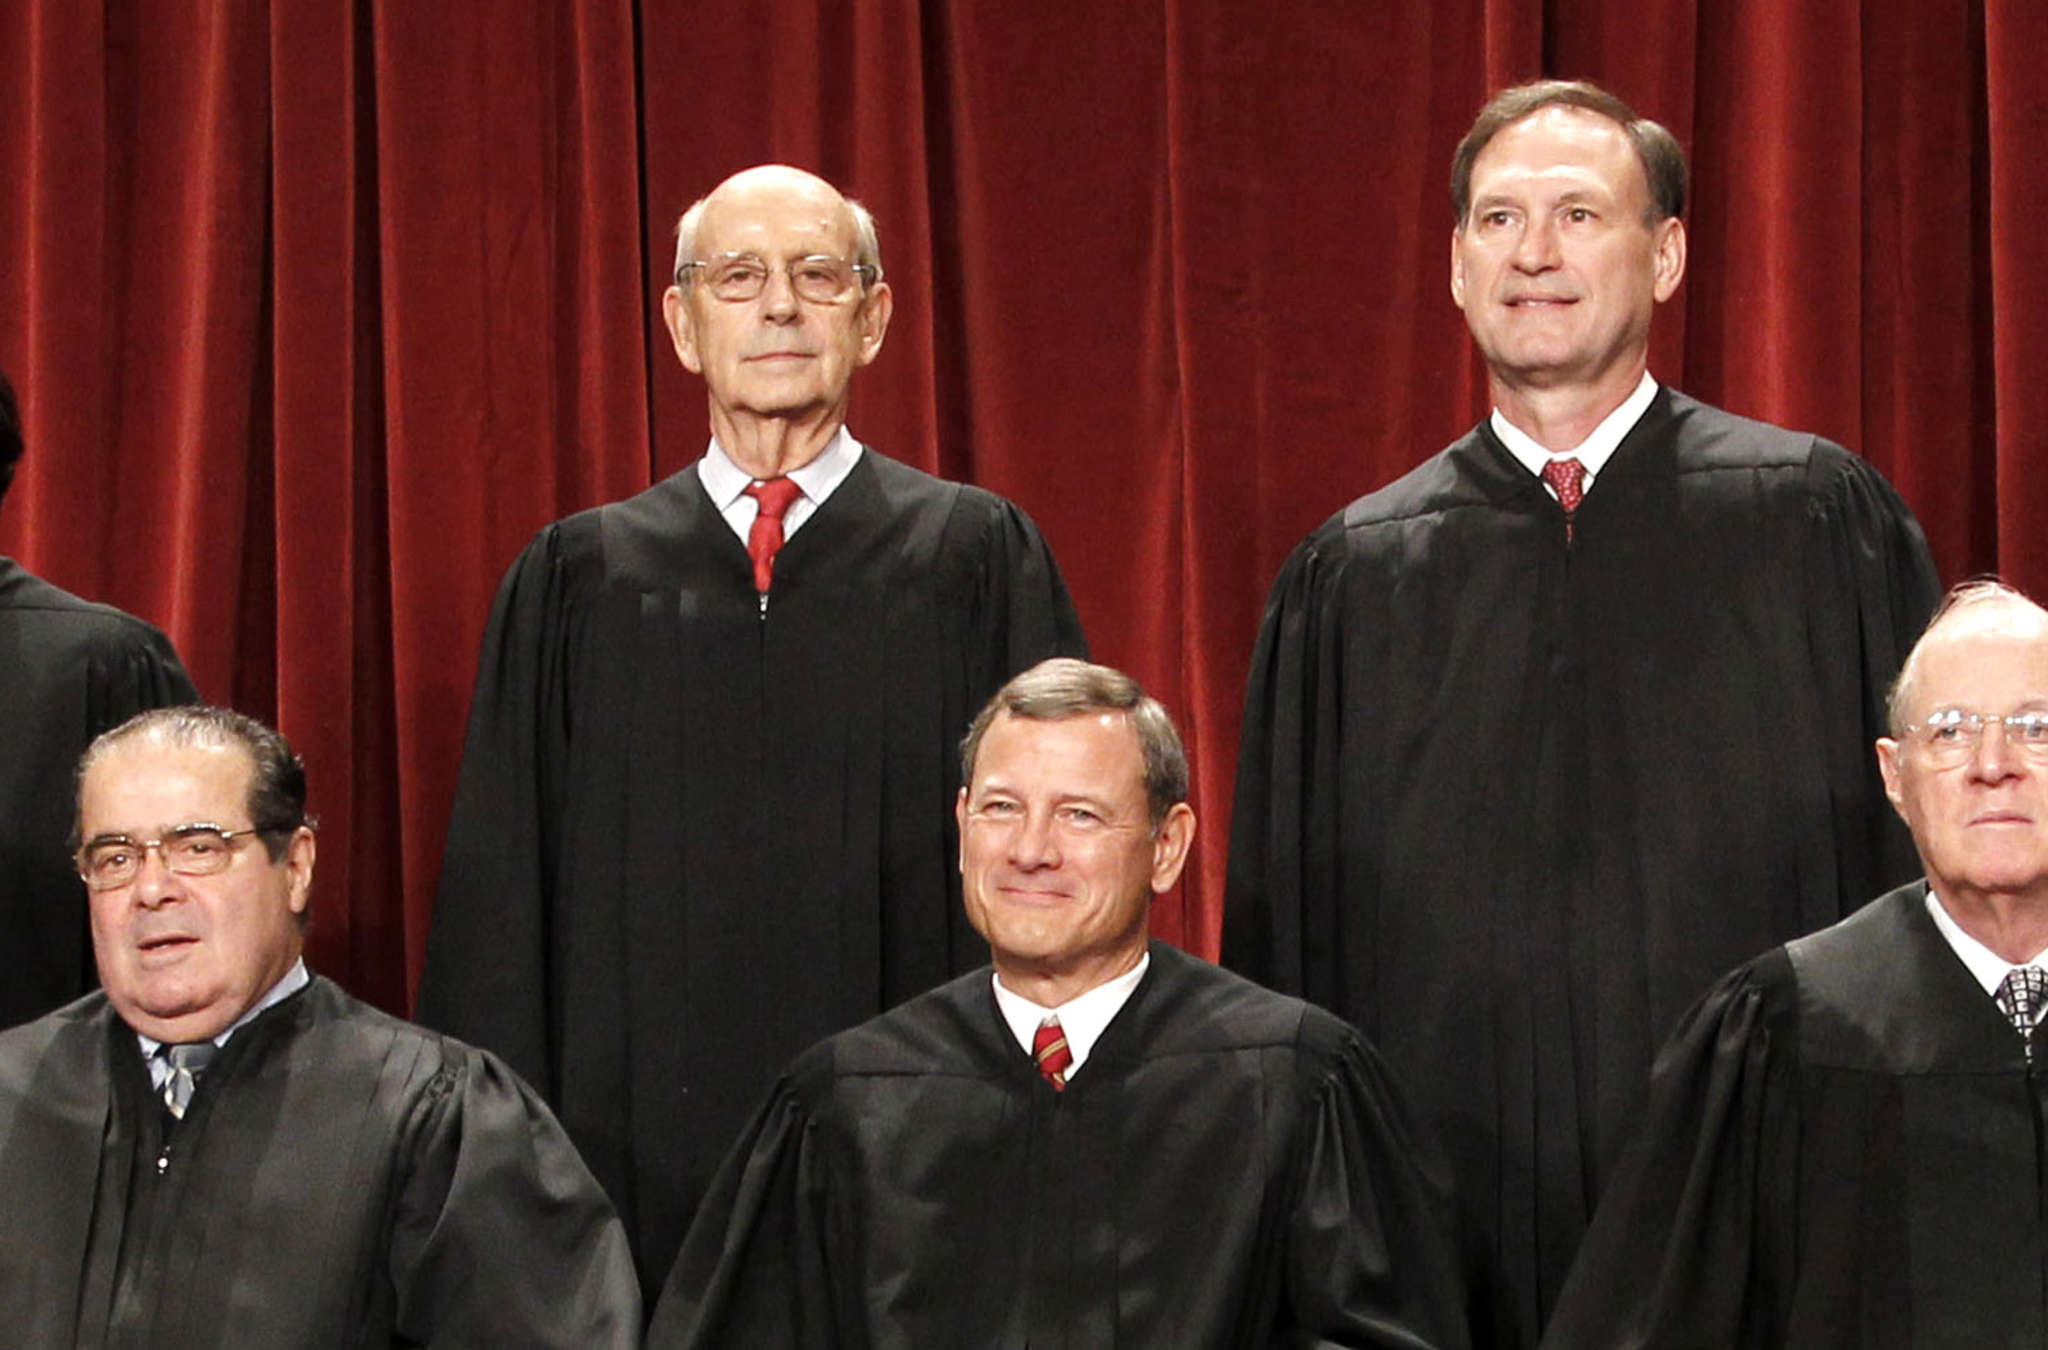 The official U.S. Supreme Court photo in 2010, with Justice Antonin Scalia at left.